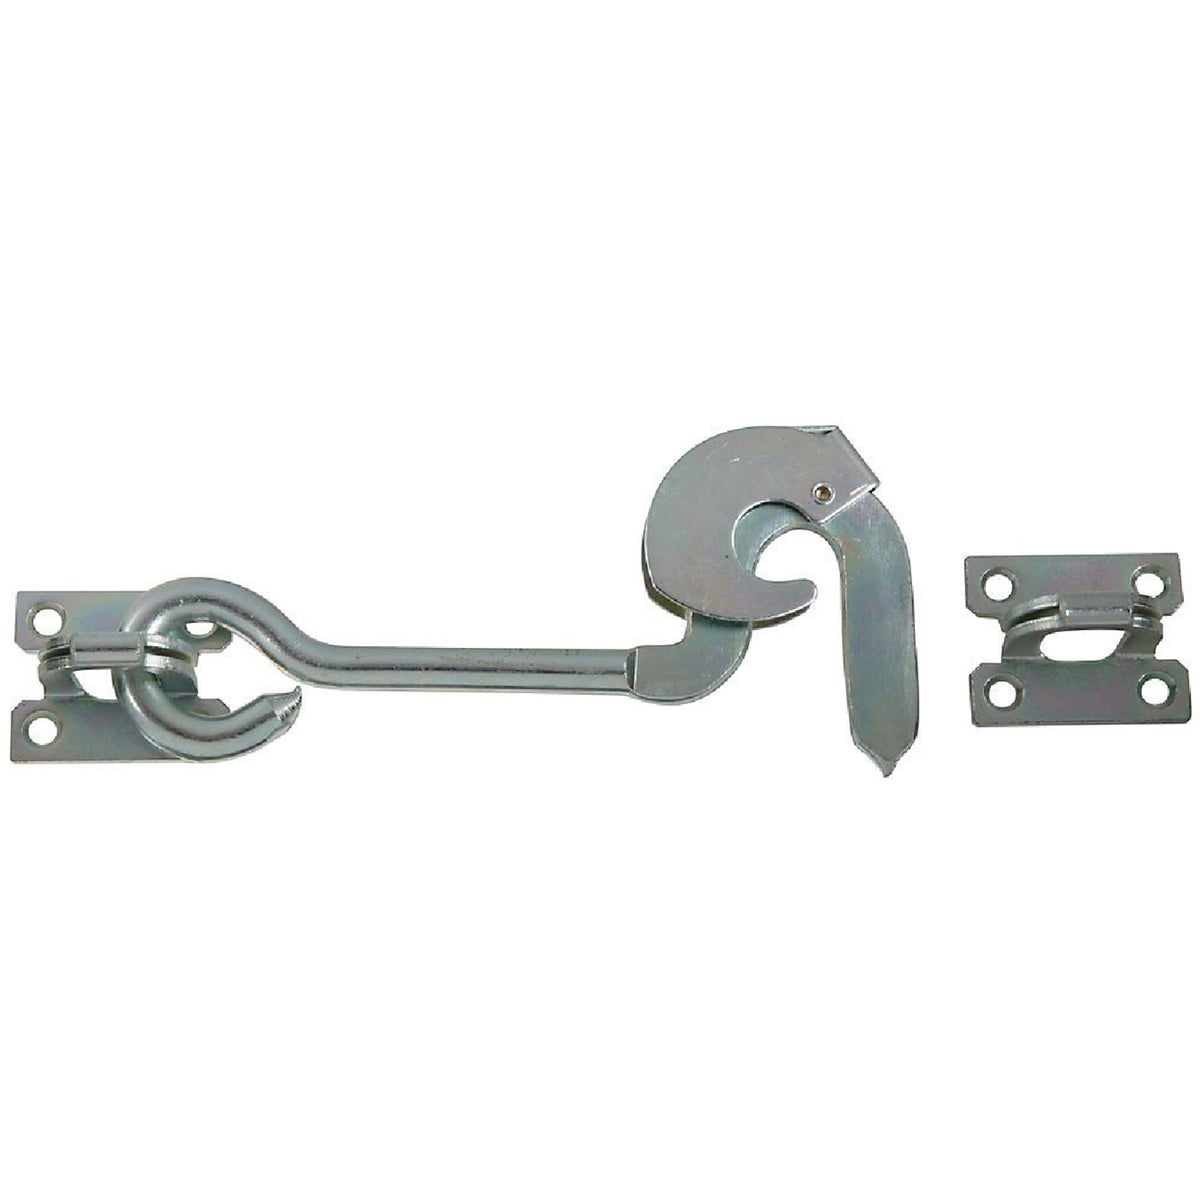 "8"" SAFETY GATE HOOK - N122390 by National Mfg Co"